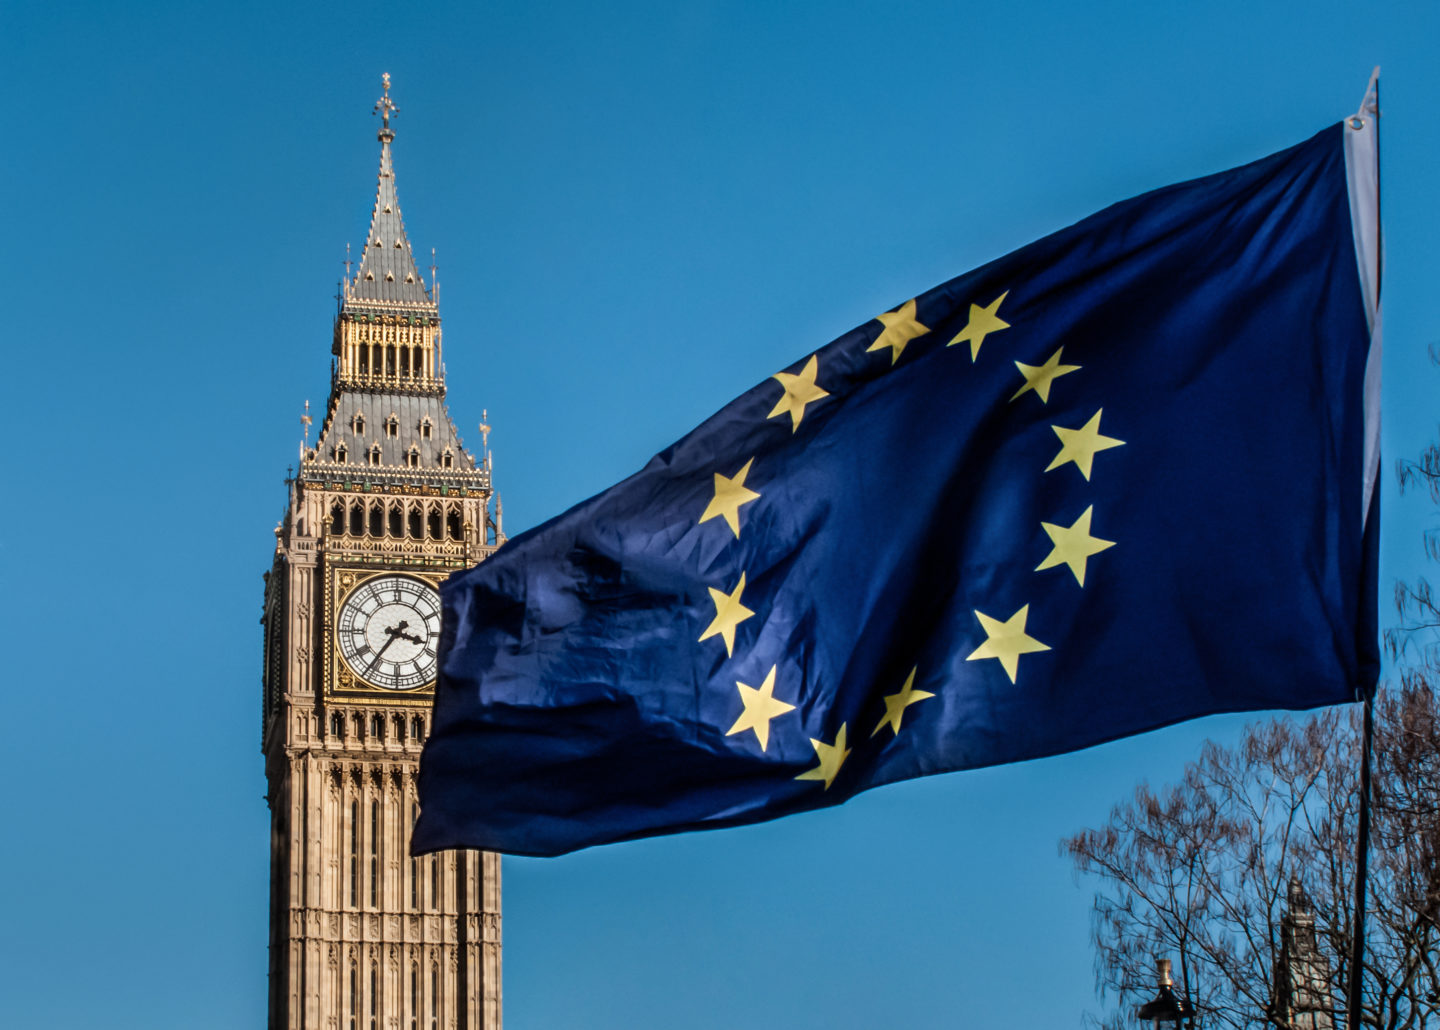 Brexit polls show majority in favour of remaining in EU